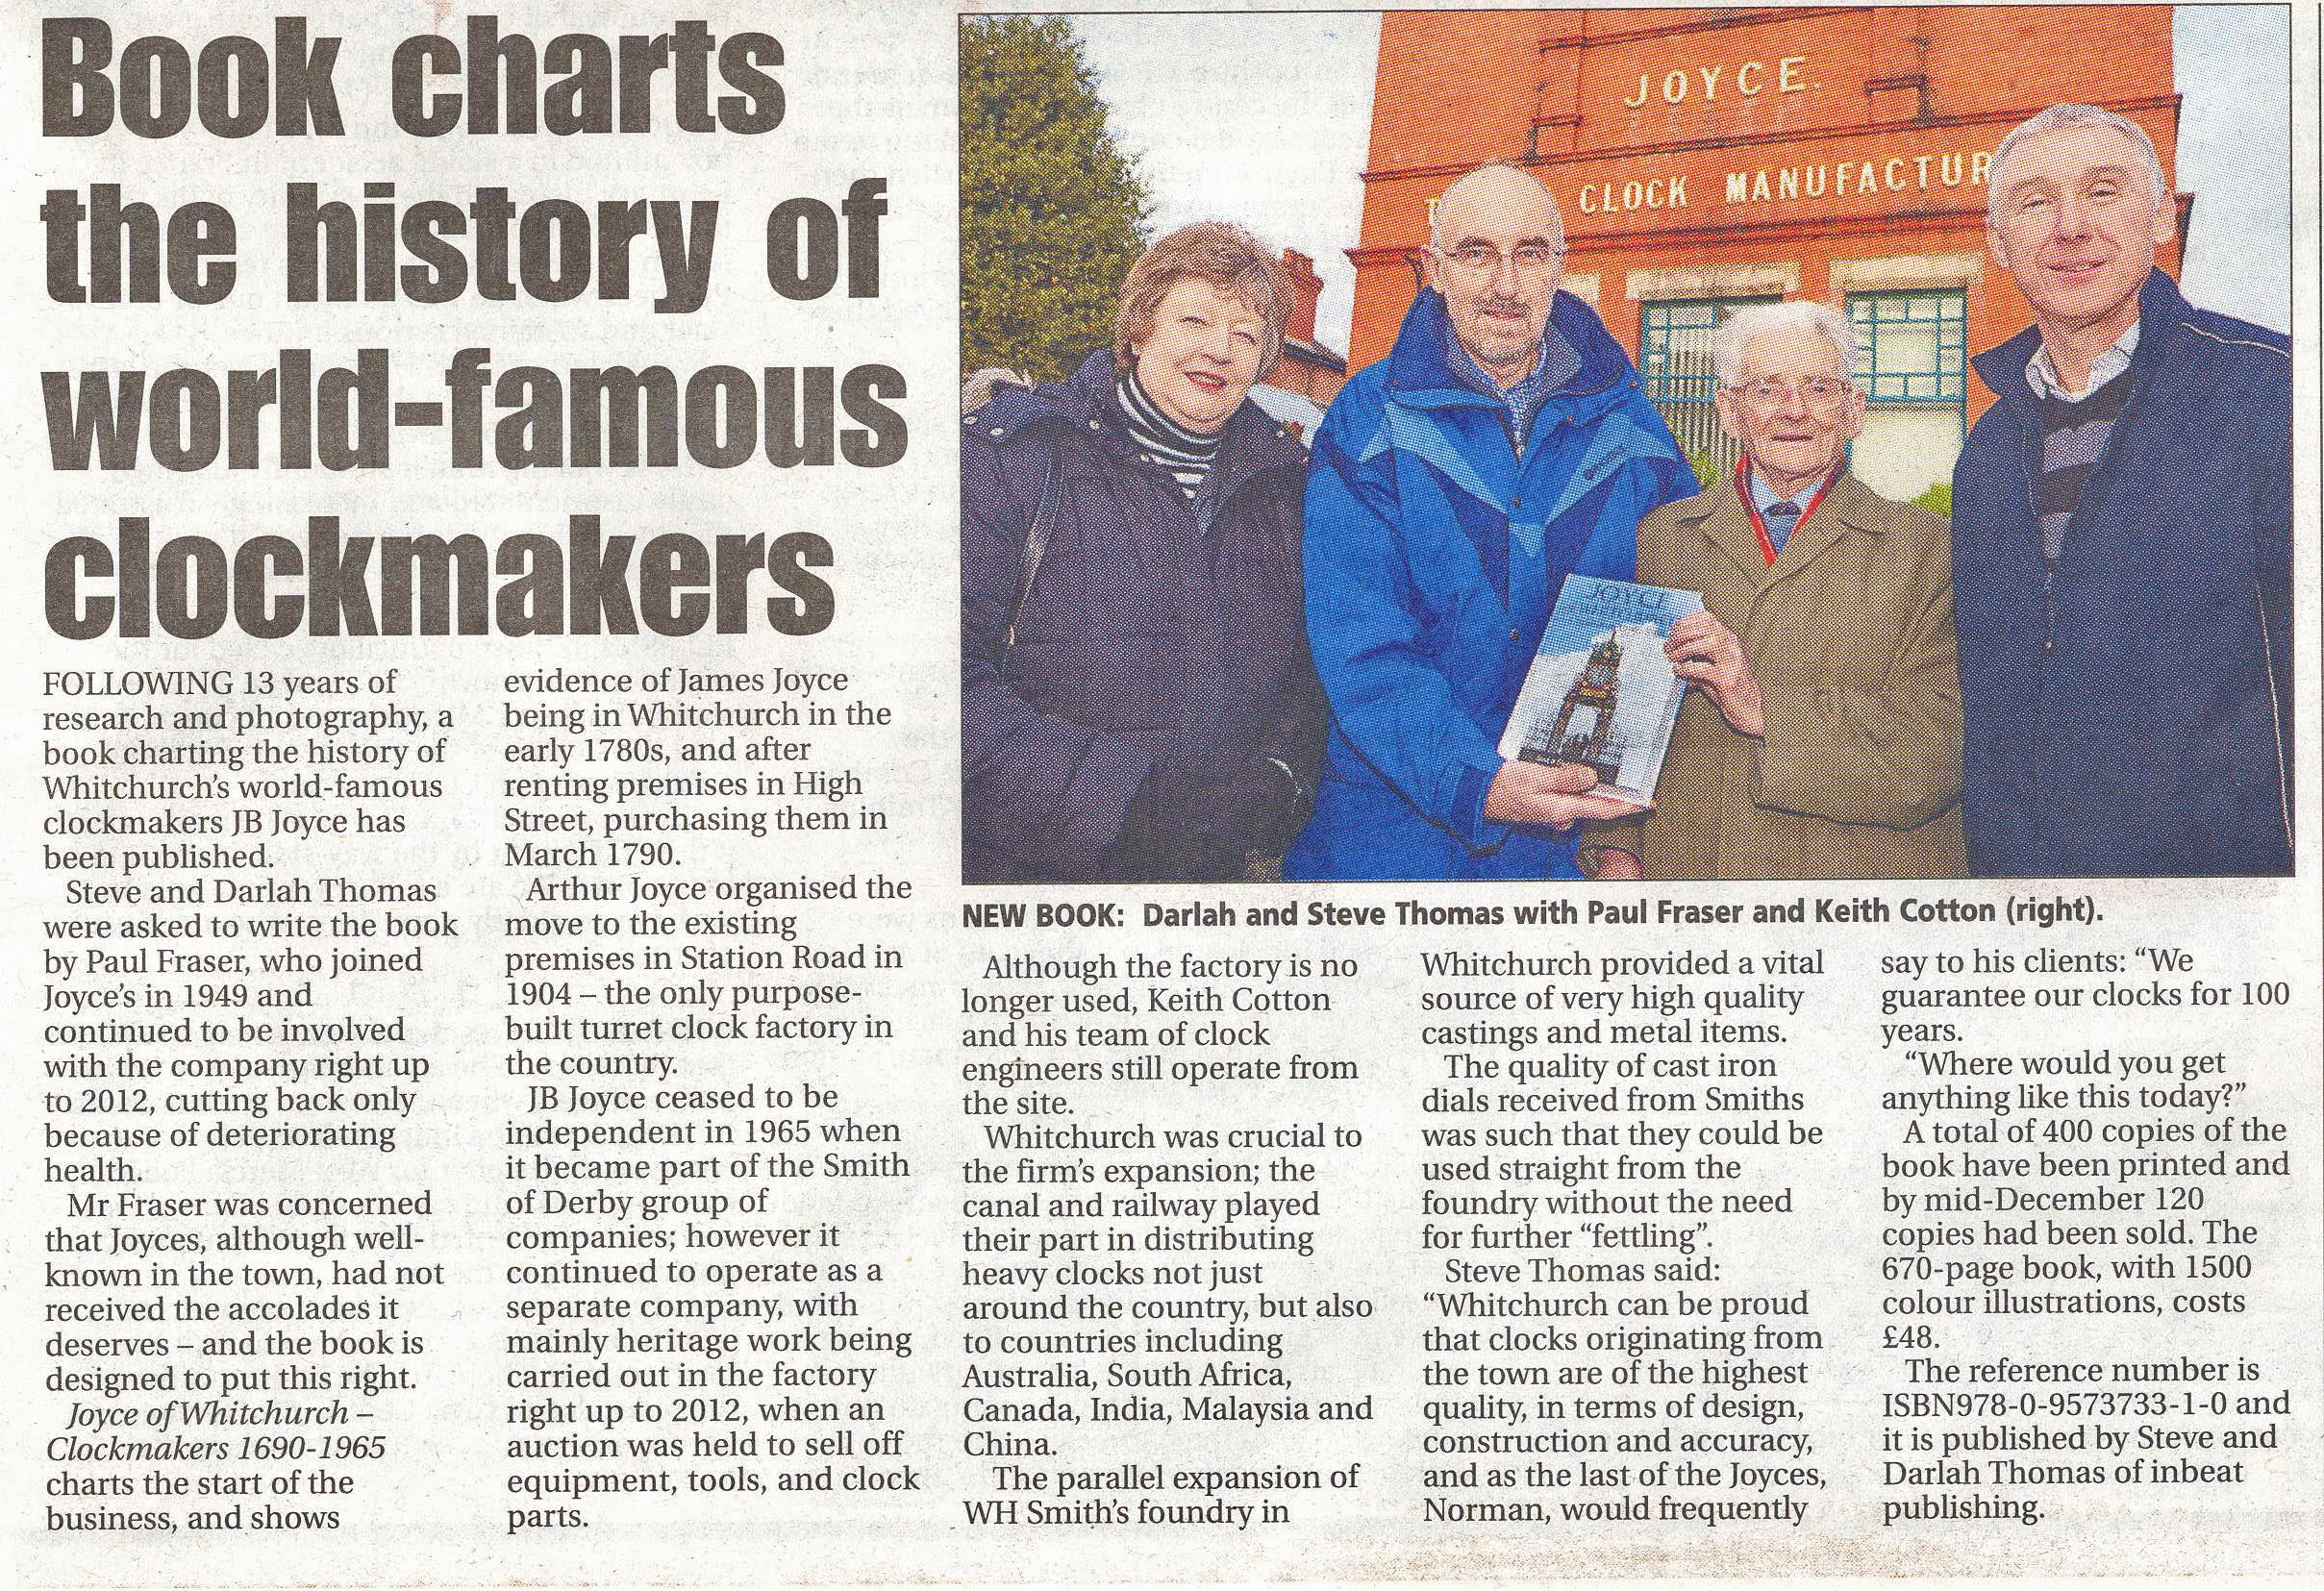 The article from the Whitchurch Herald which features the book. It was published on 25 Dec. 2013.